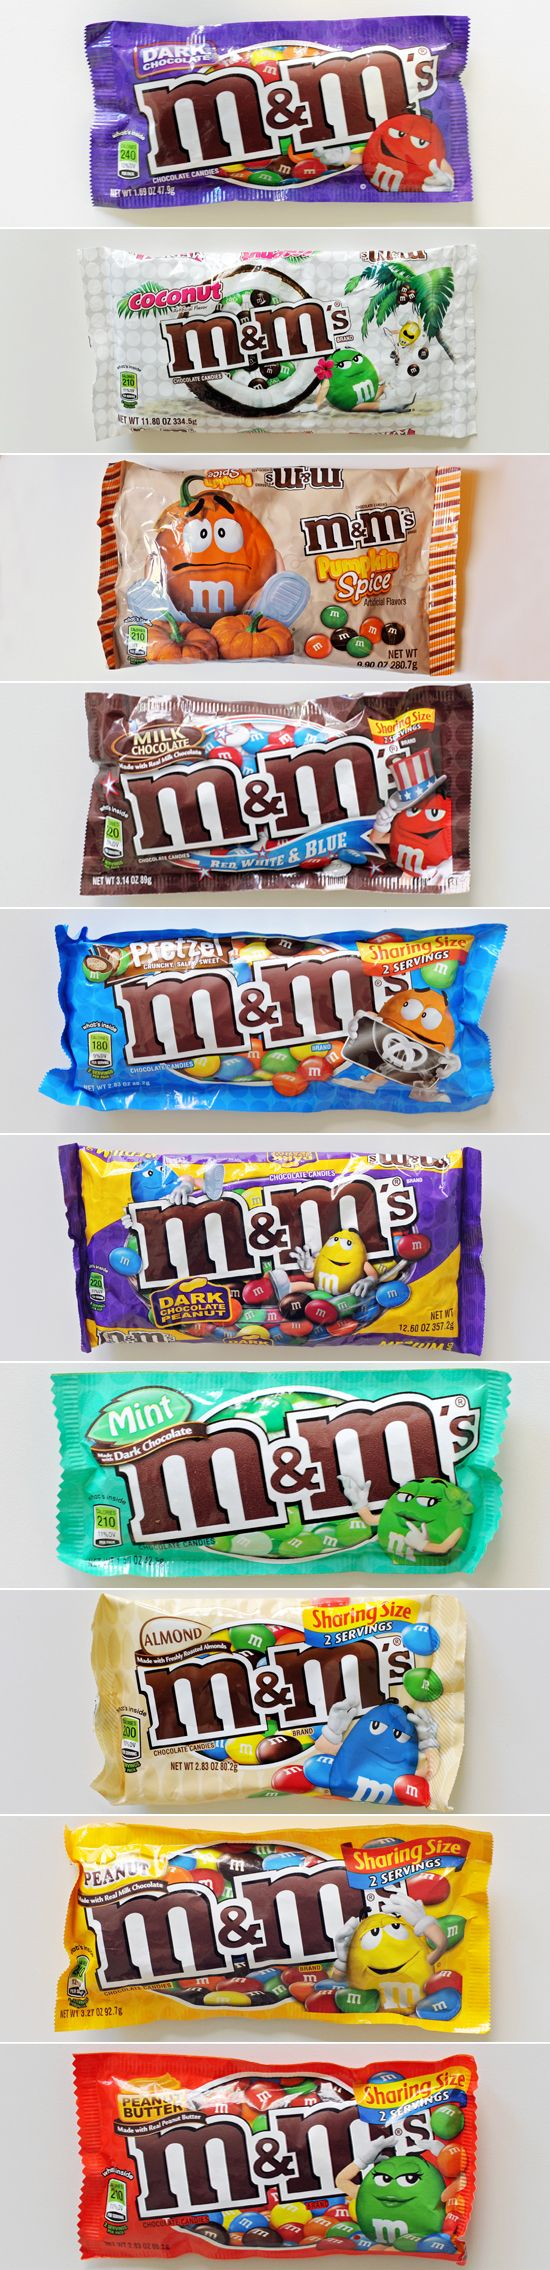 All the M&M's flavors, ranked from worst to best! Do you agree?